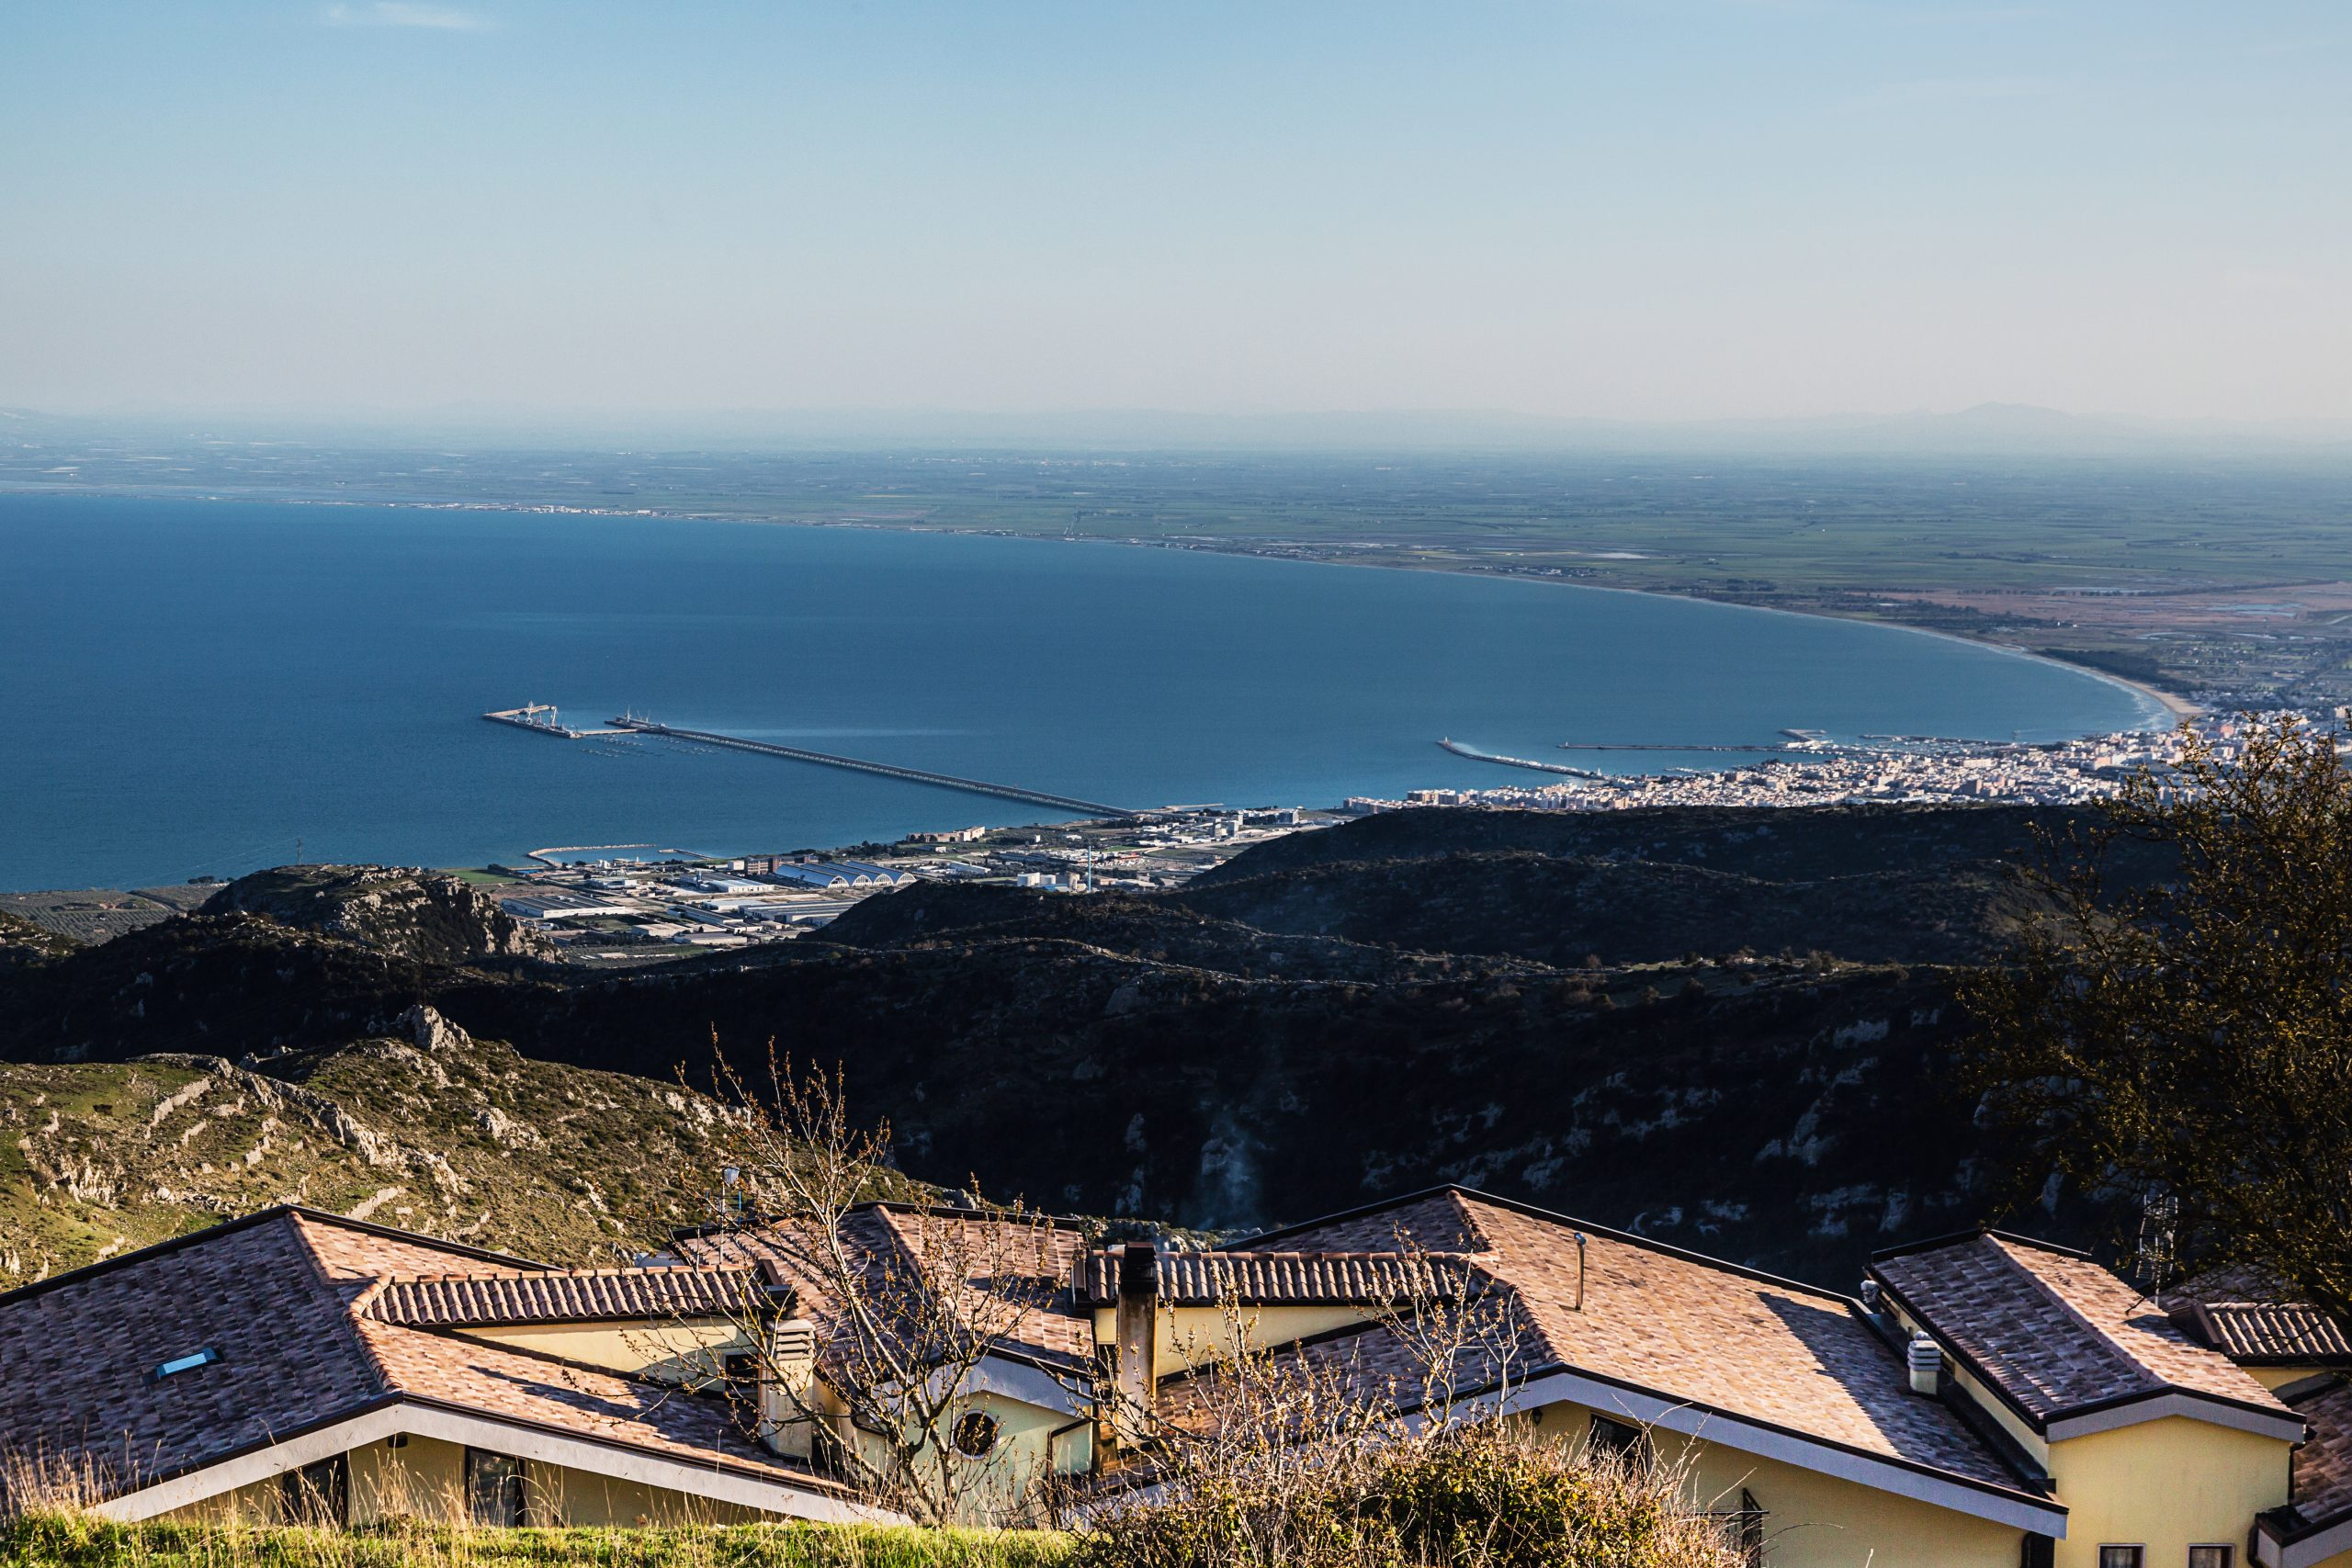 The Gulf of Manfredonia seen from Monte Sant'Angelo. Jurisdiction over the industrial area next to Manfredonia belongs to the town, located almost 17 kilometres away.